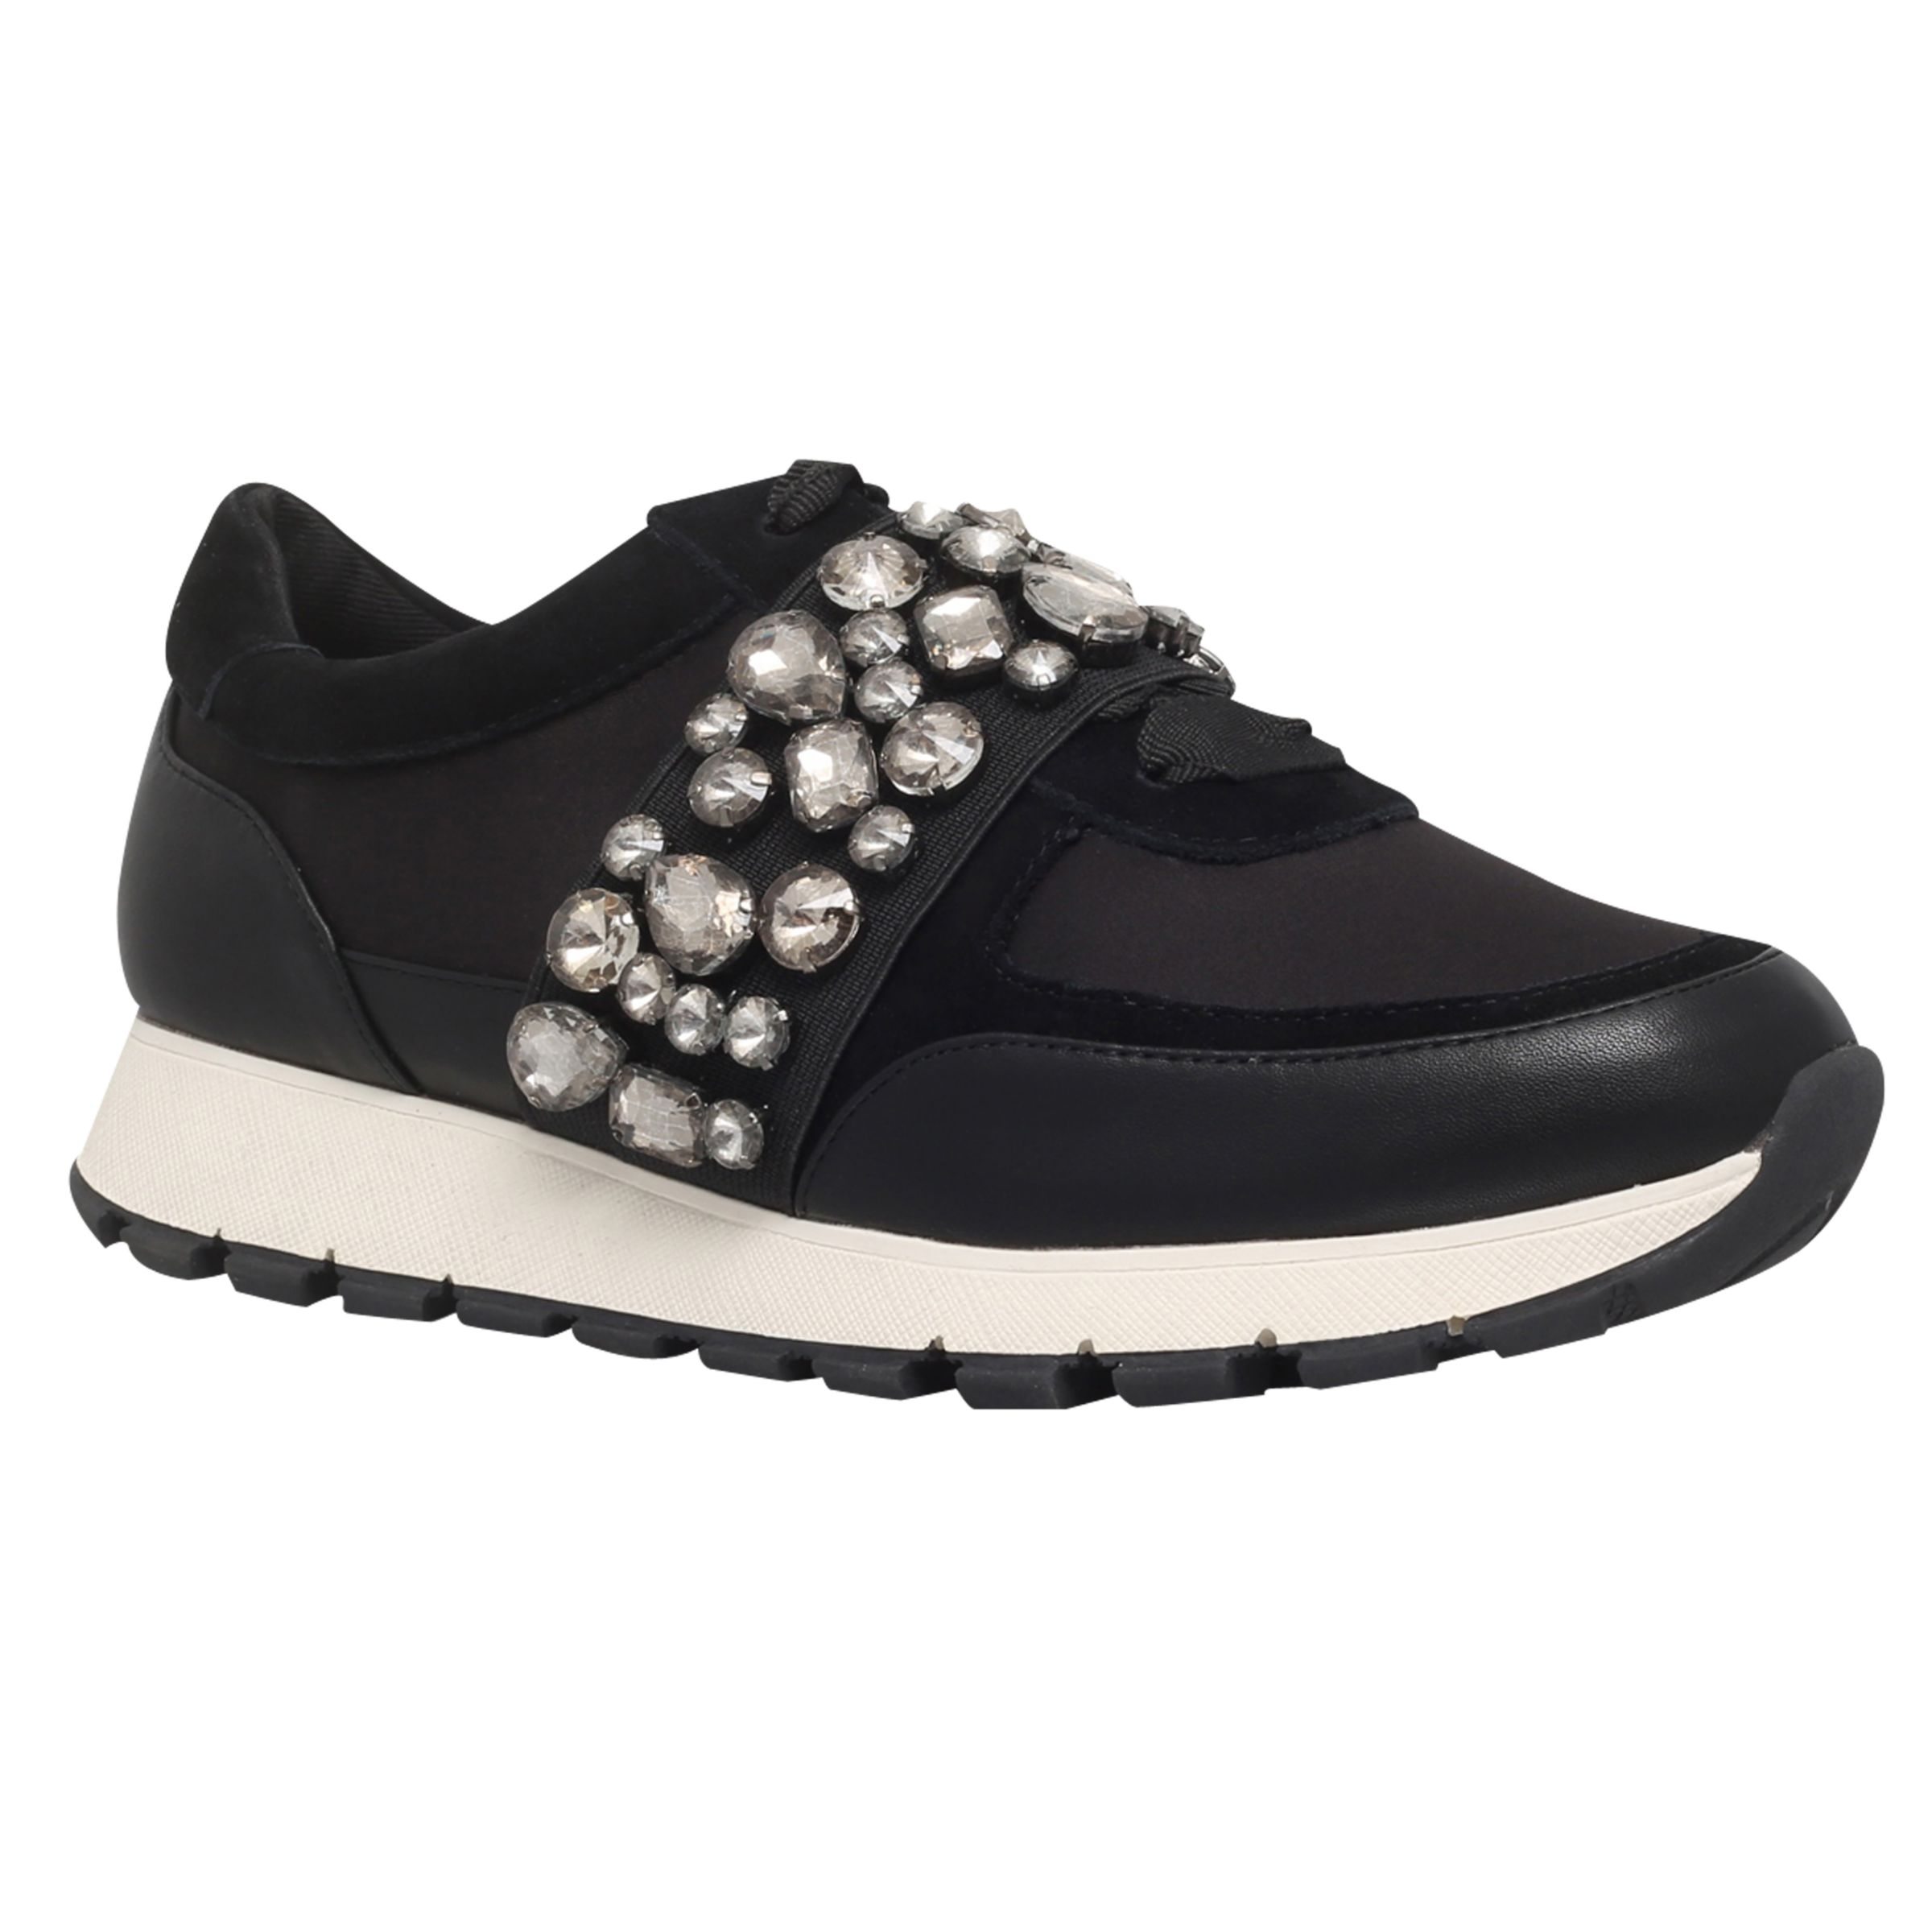 KG by Kurt Geiger KG by Kurt Geiger Lovely Embellished Trainers, Black